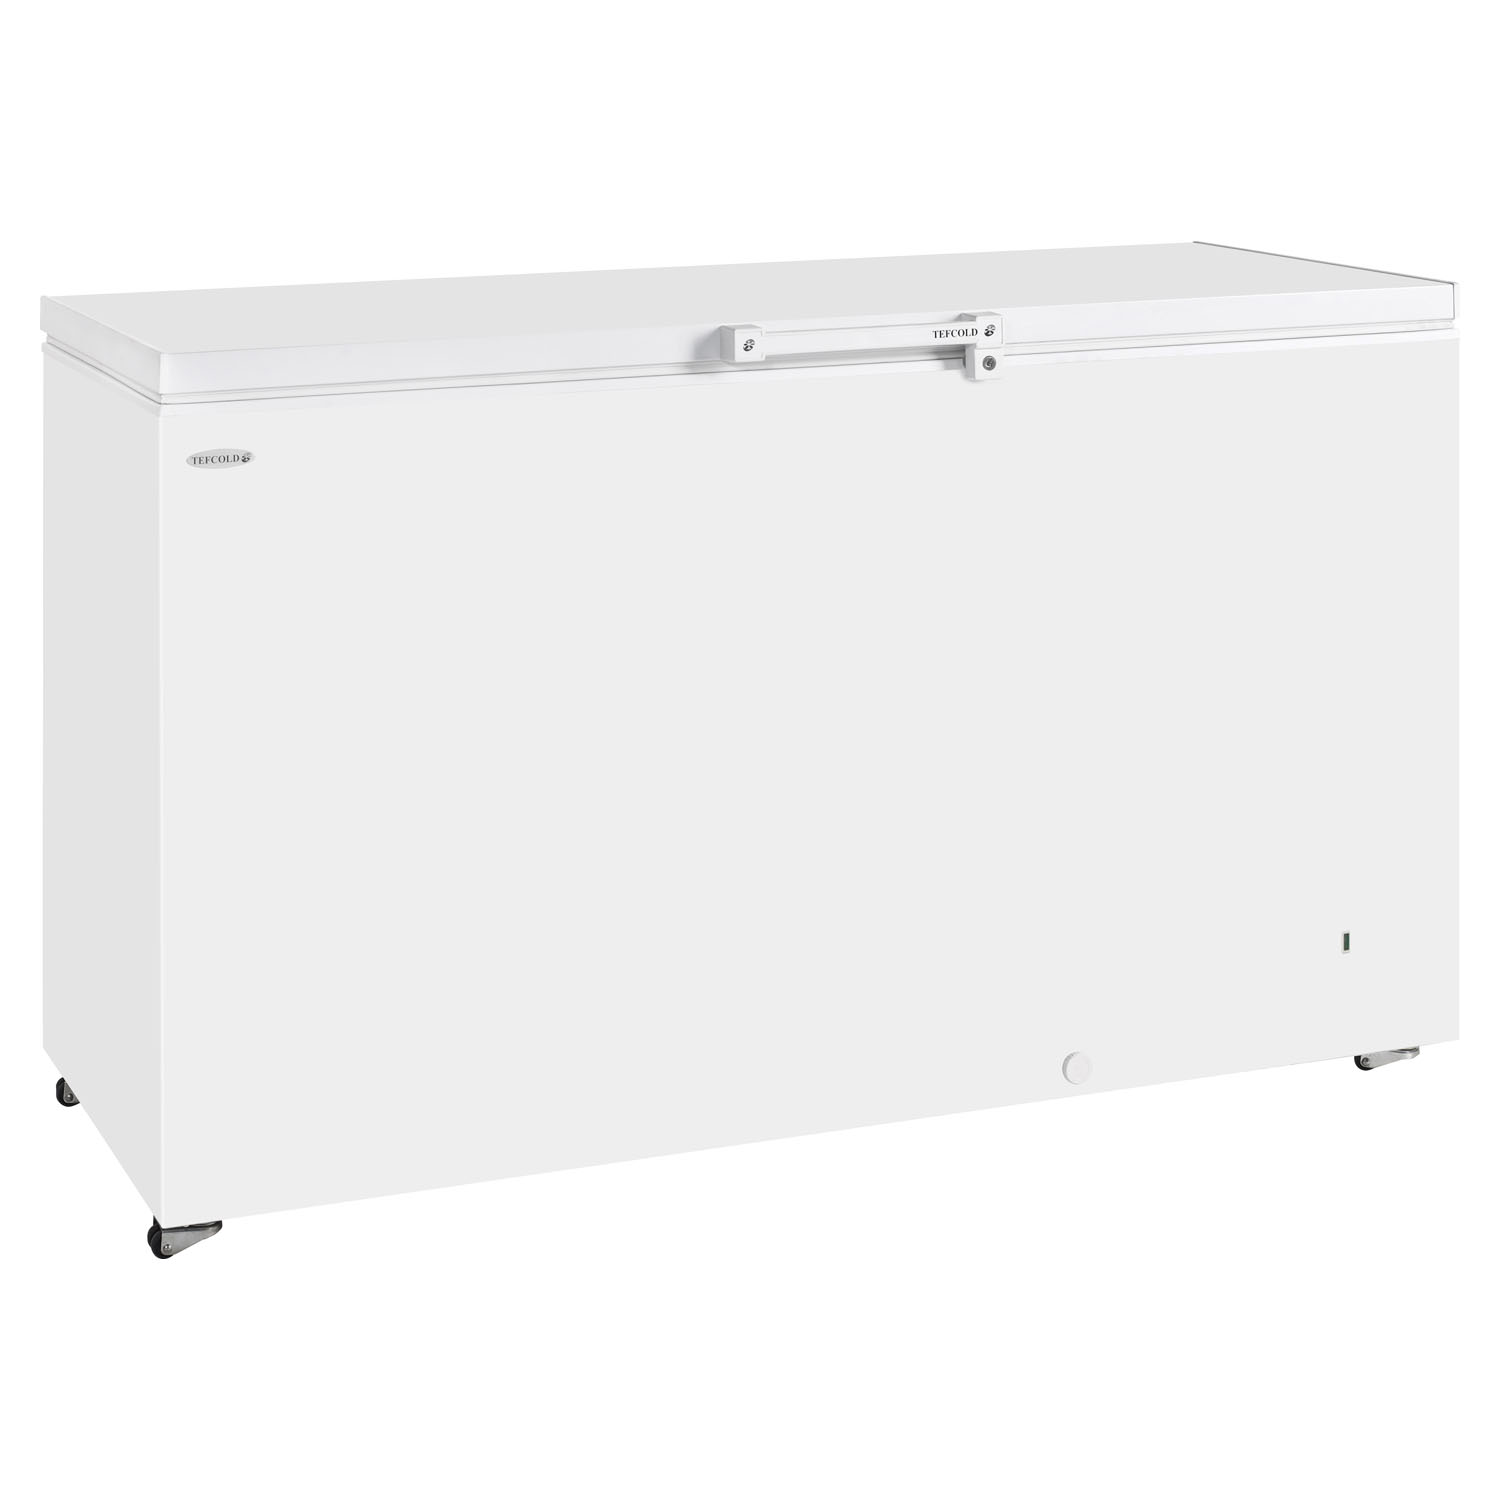 Tefcold GM500 Chest Freezer